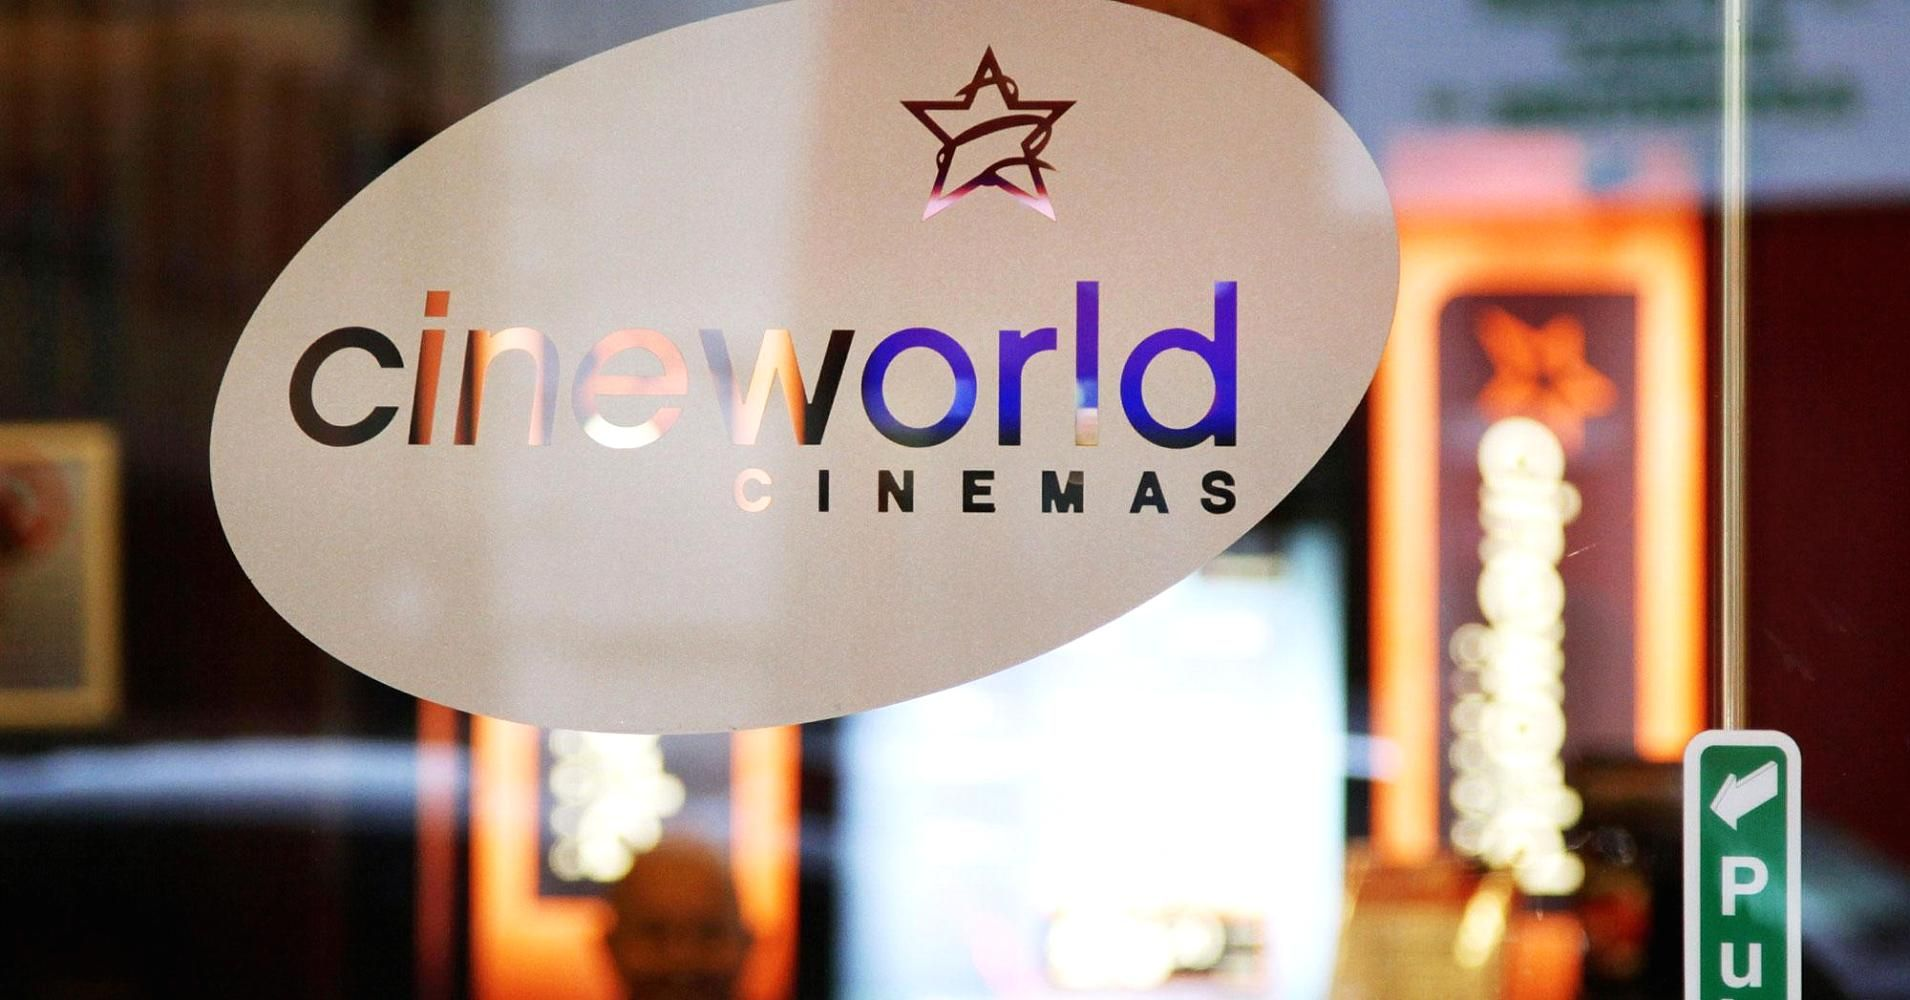 boulder station movies prices on tuesday